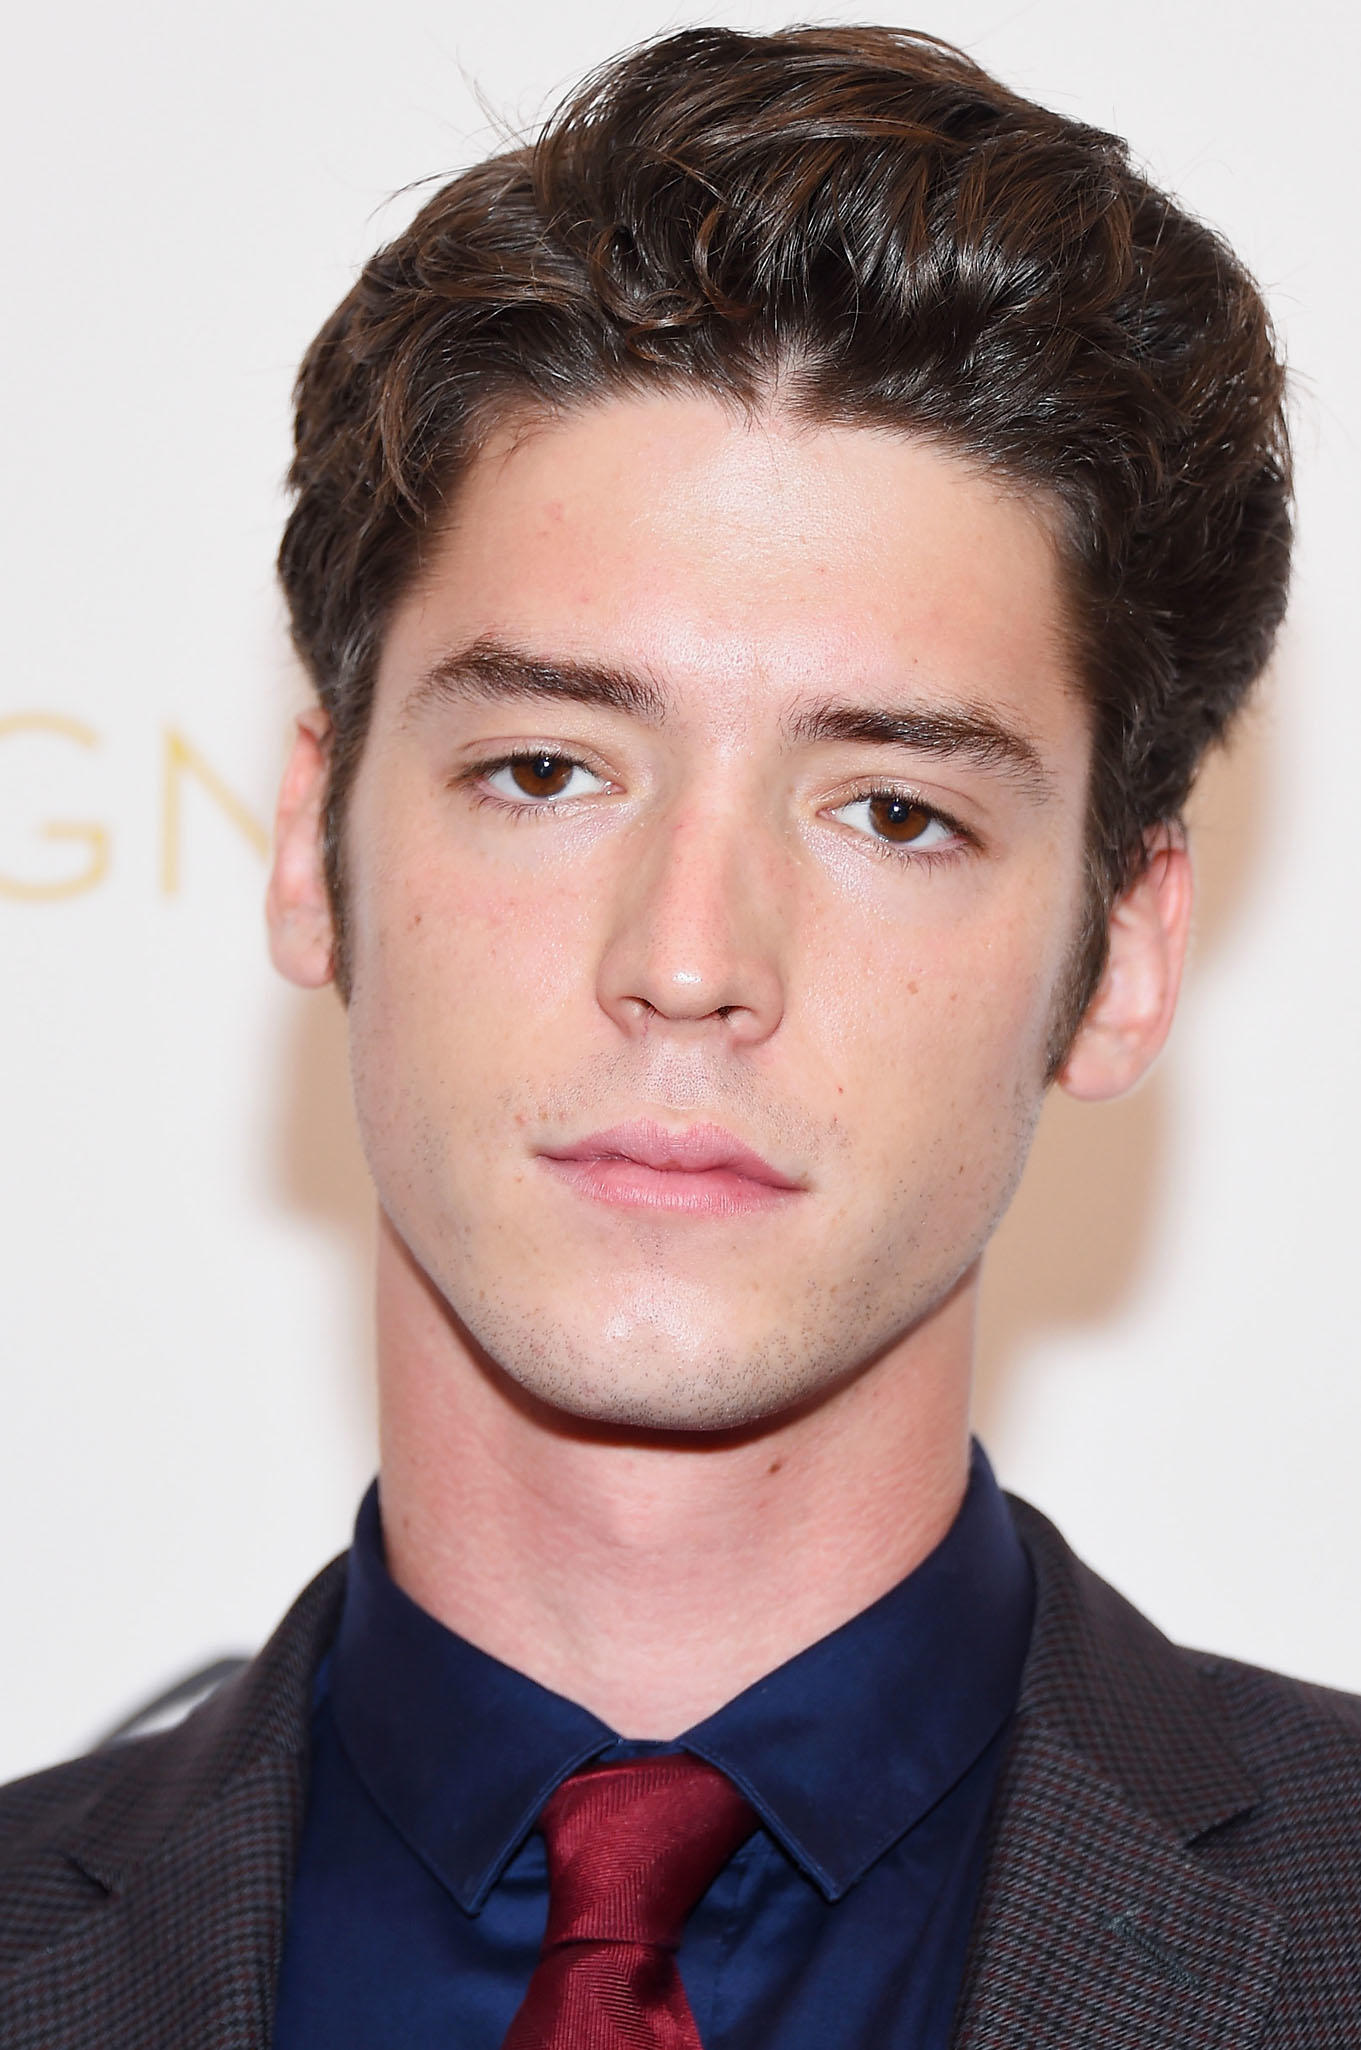 Pico Alexander at the New York premiere of